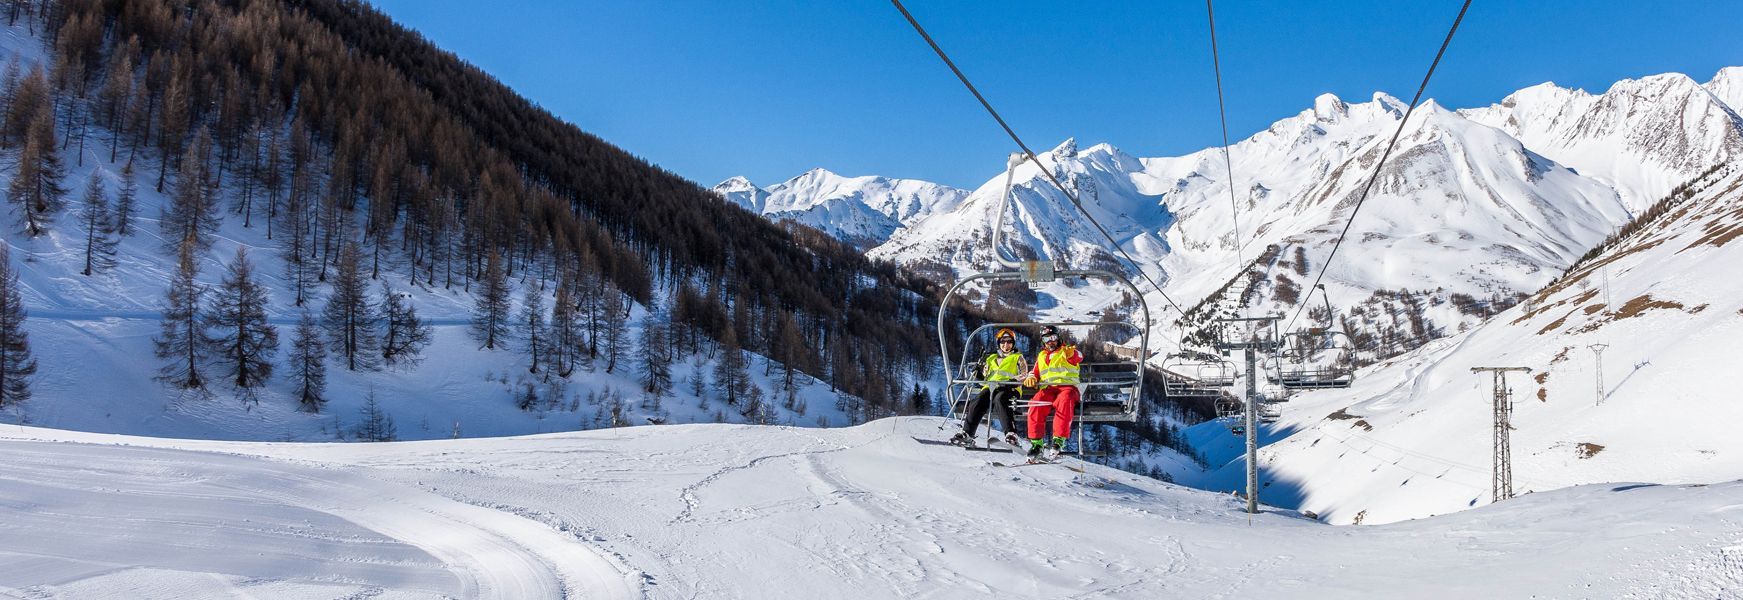 Location Ski Intersport La Foux d'Allos